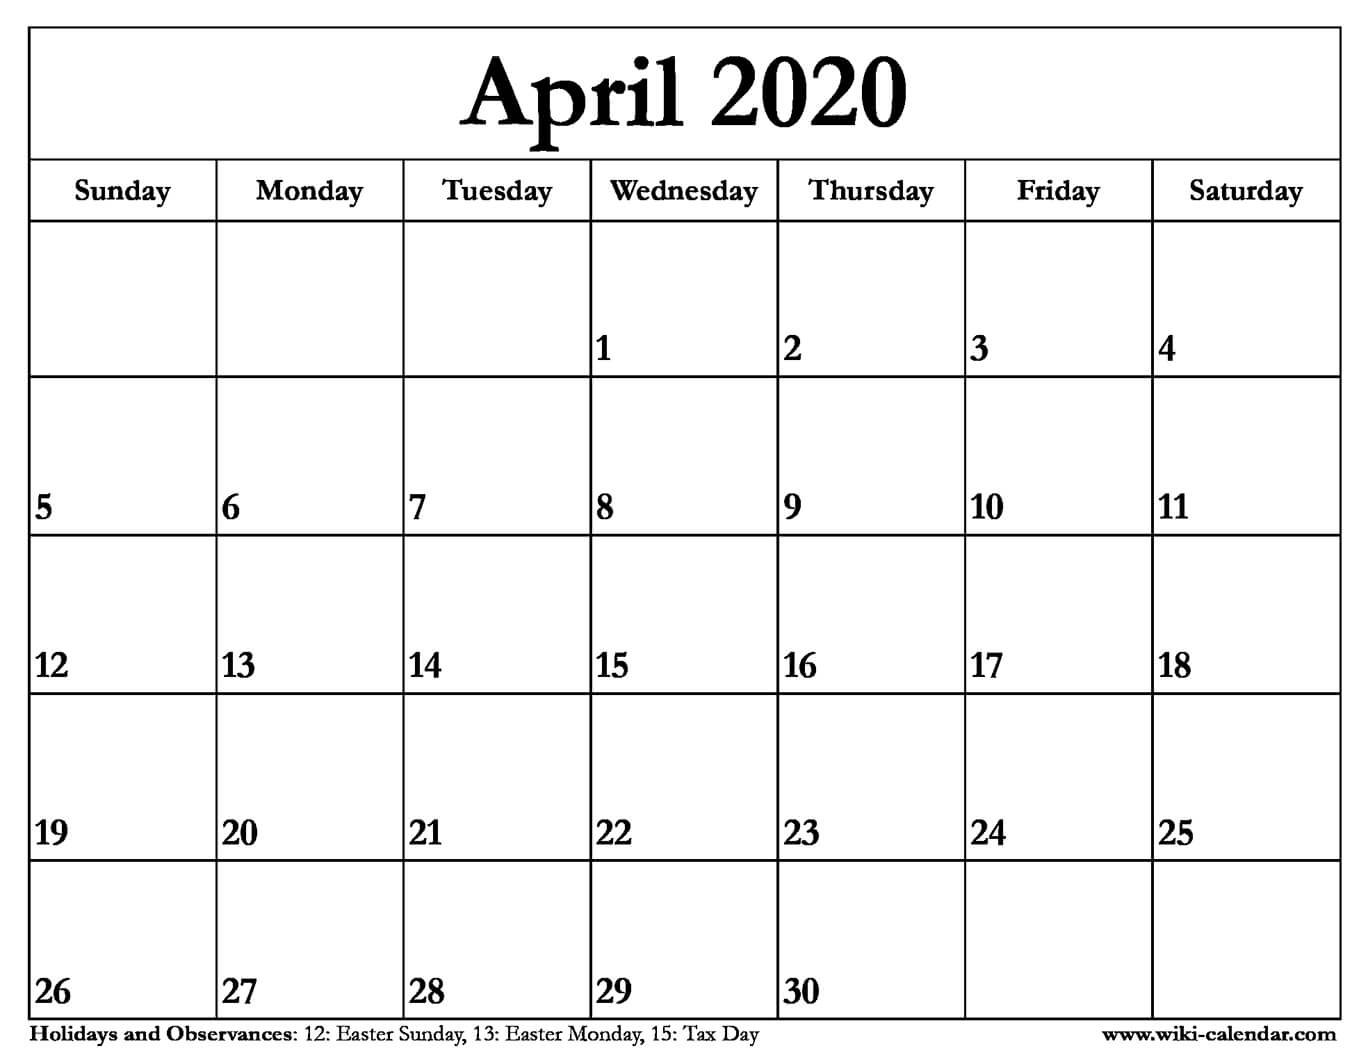 Printable Calendars April 2020  Bolan.horizonconsulting.co with Free Printable April 2020 Calendar